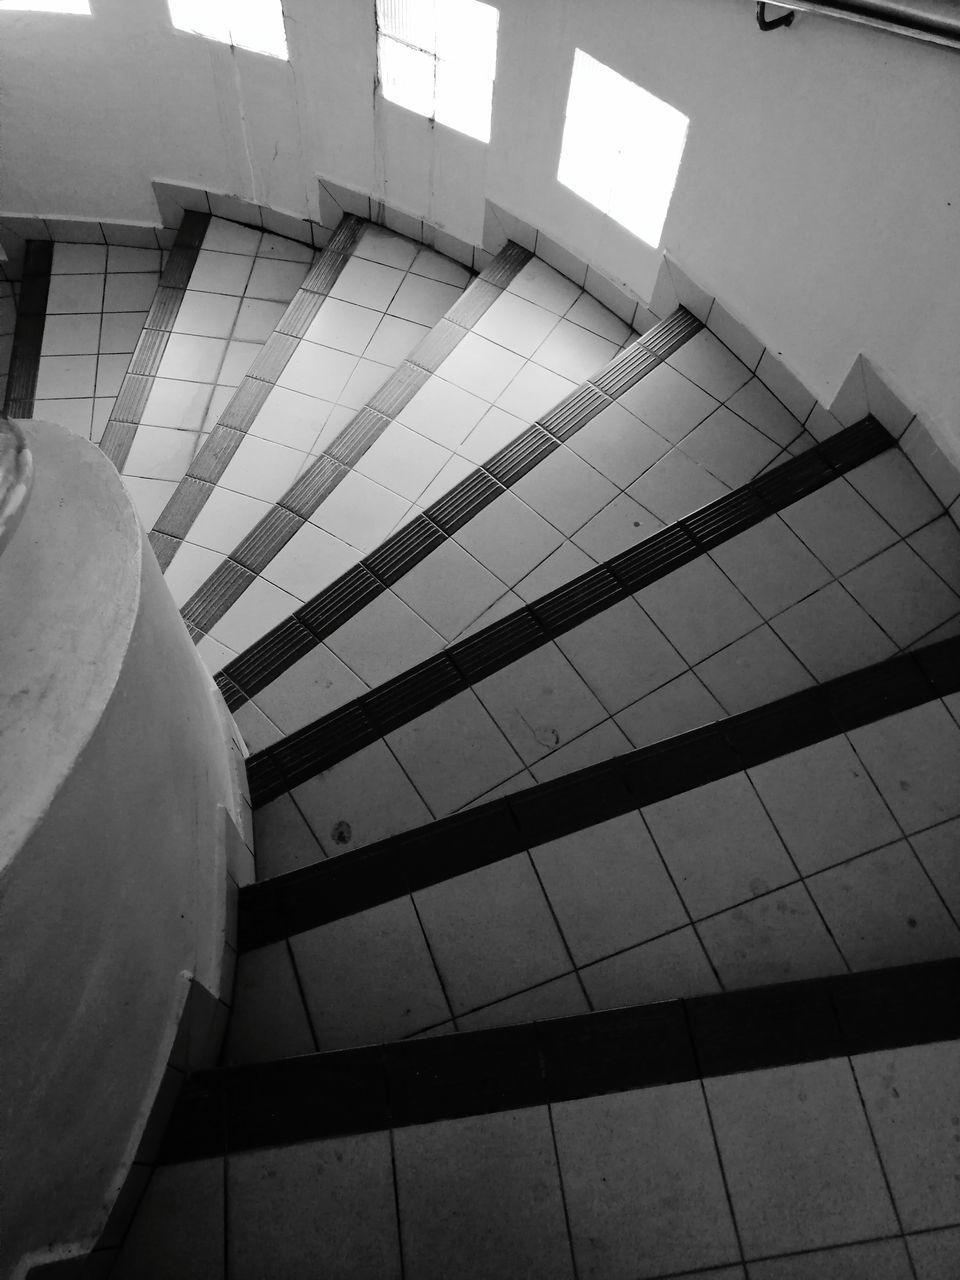 LOW ANGLE VIEW OF STAIRCASE ON FLOOR